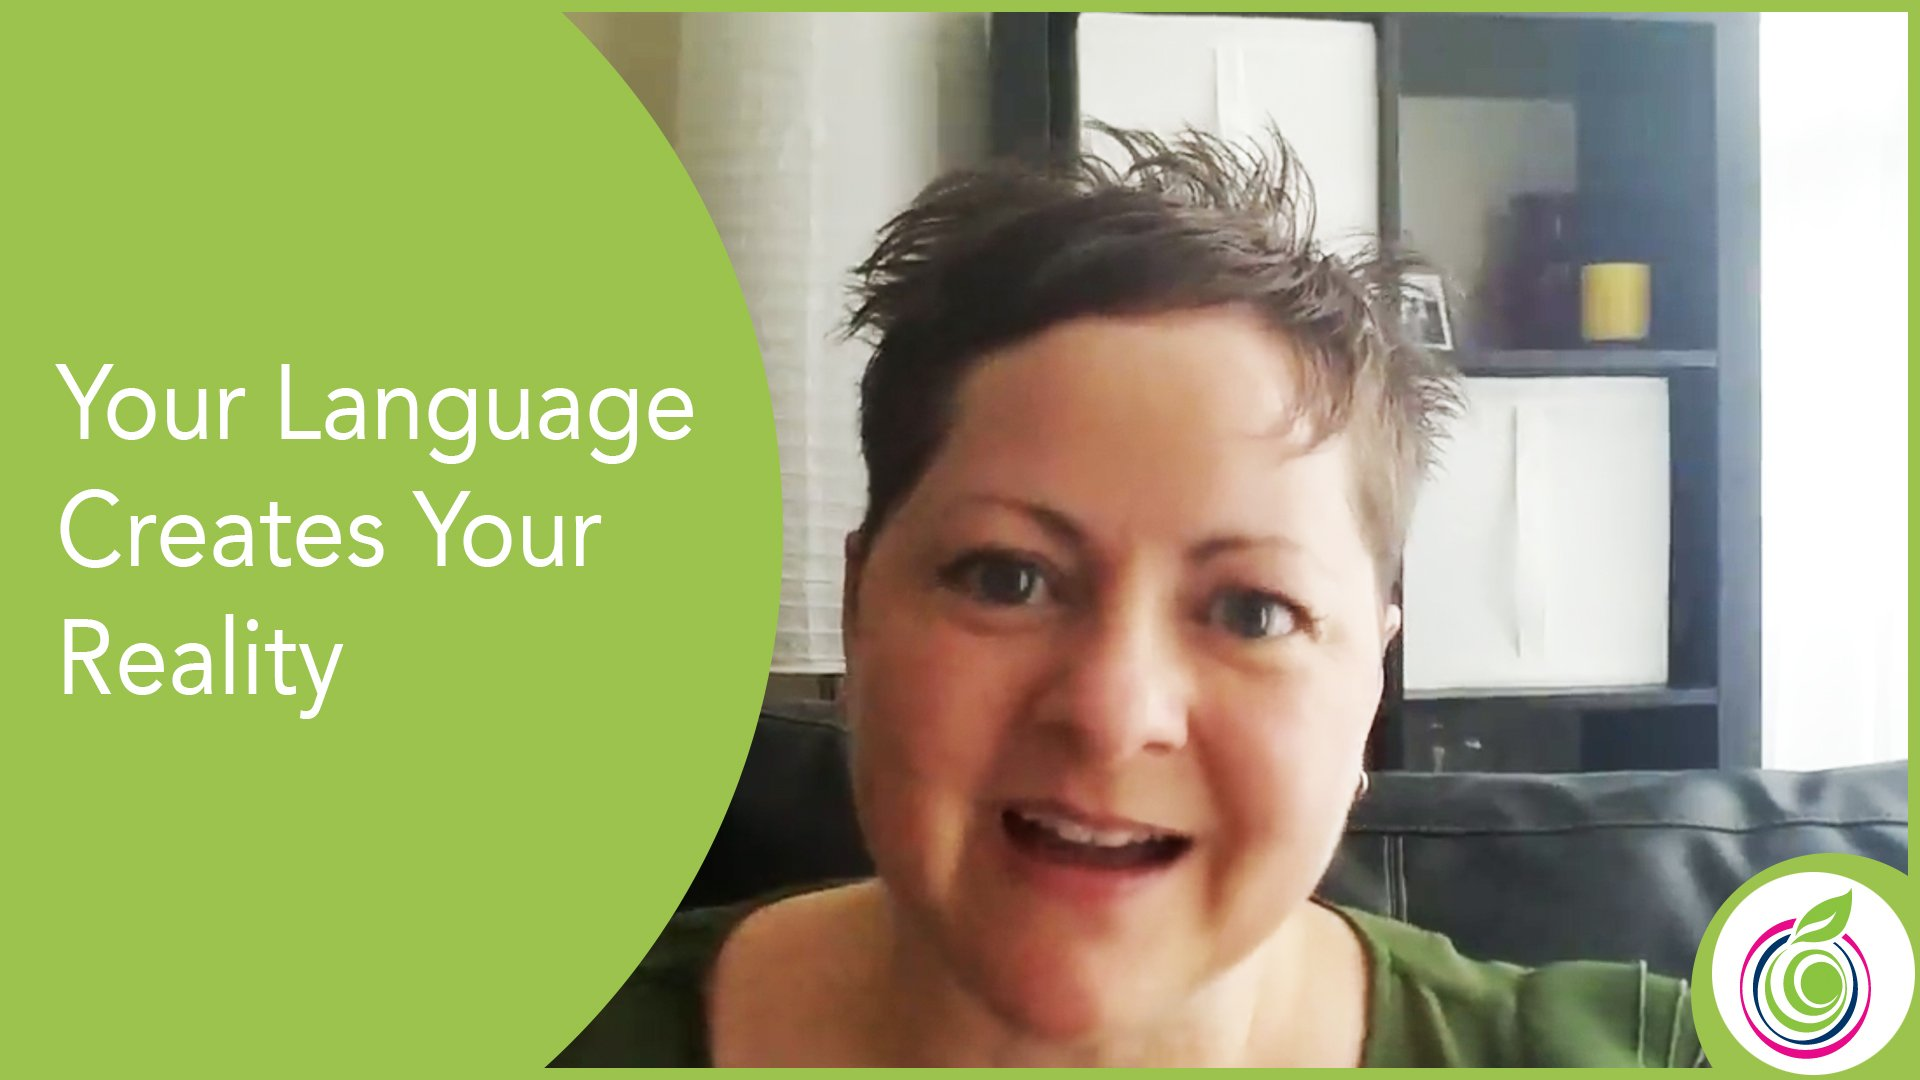 VIDEO: Your Language Creates Your Reality